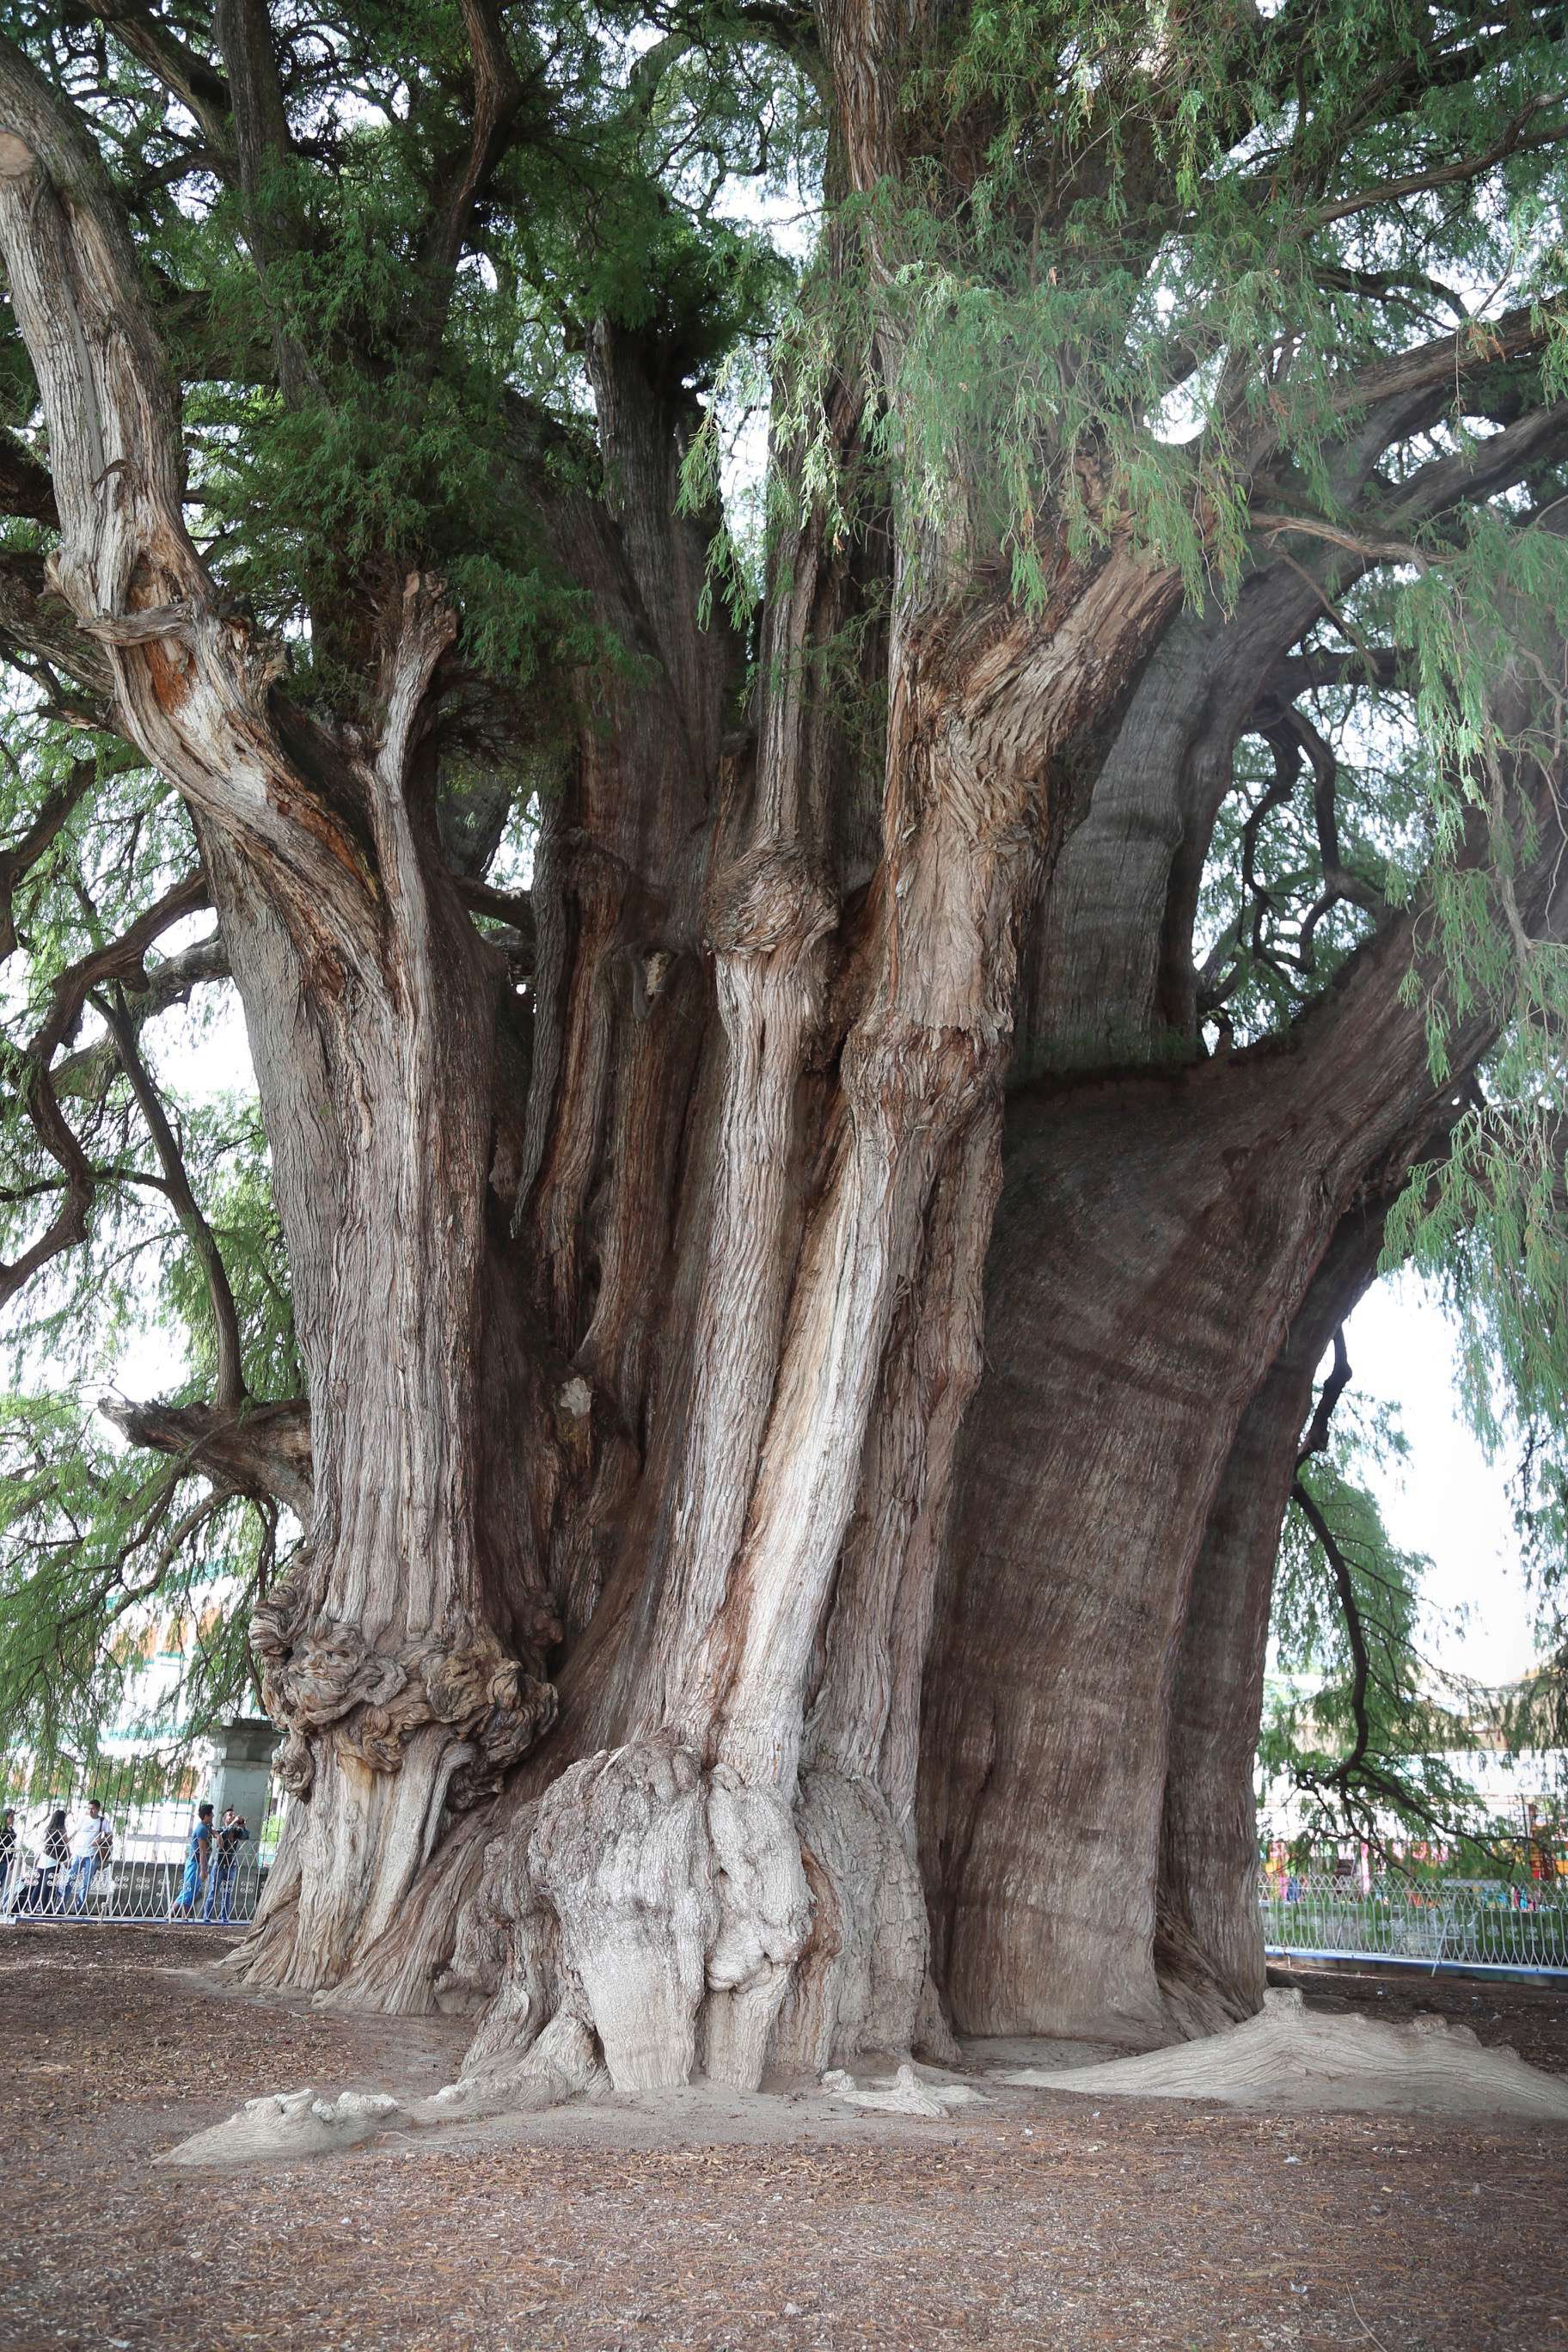 The massive trunk gives way to enormous branches that create a majestic canopy that provides shade and tranquility.